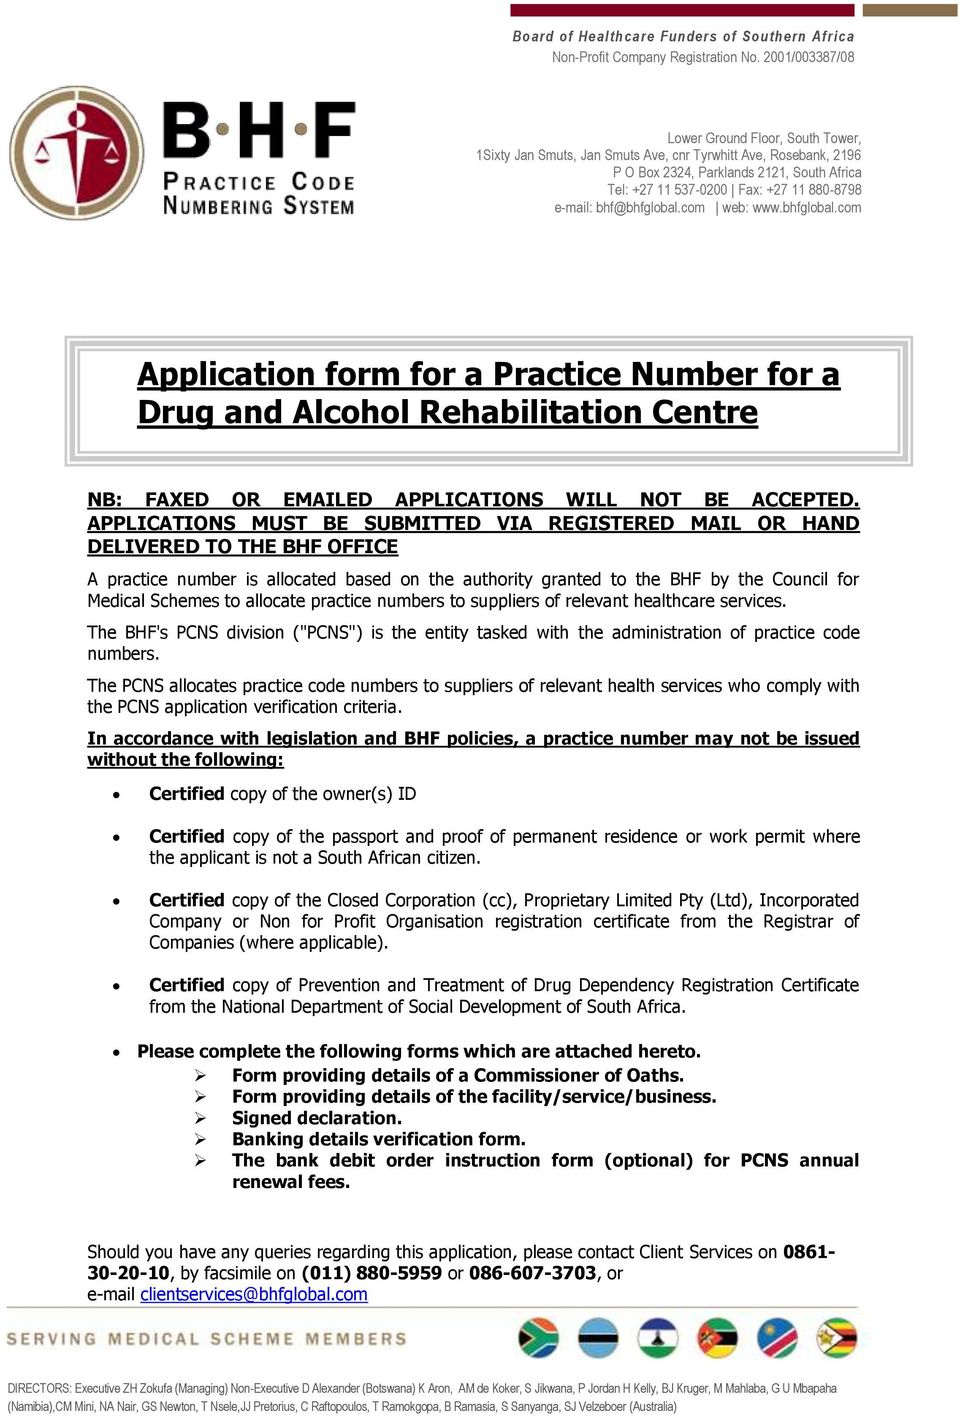 e-mail: bhf@bhfglobal.com web: www.bhfglobal.com Application form for a Practice Number for a Drug and Alcohol Rehabilitation Centre NB: FAXED OR EMAILED APPLICATIONS WILL NOT BE ACCEPTED.